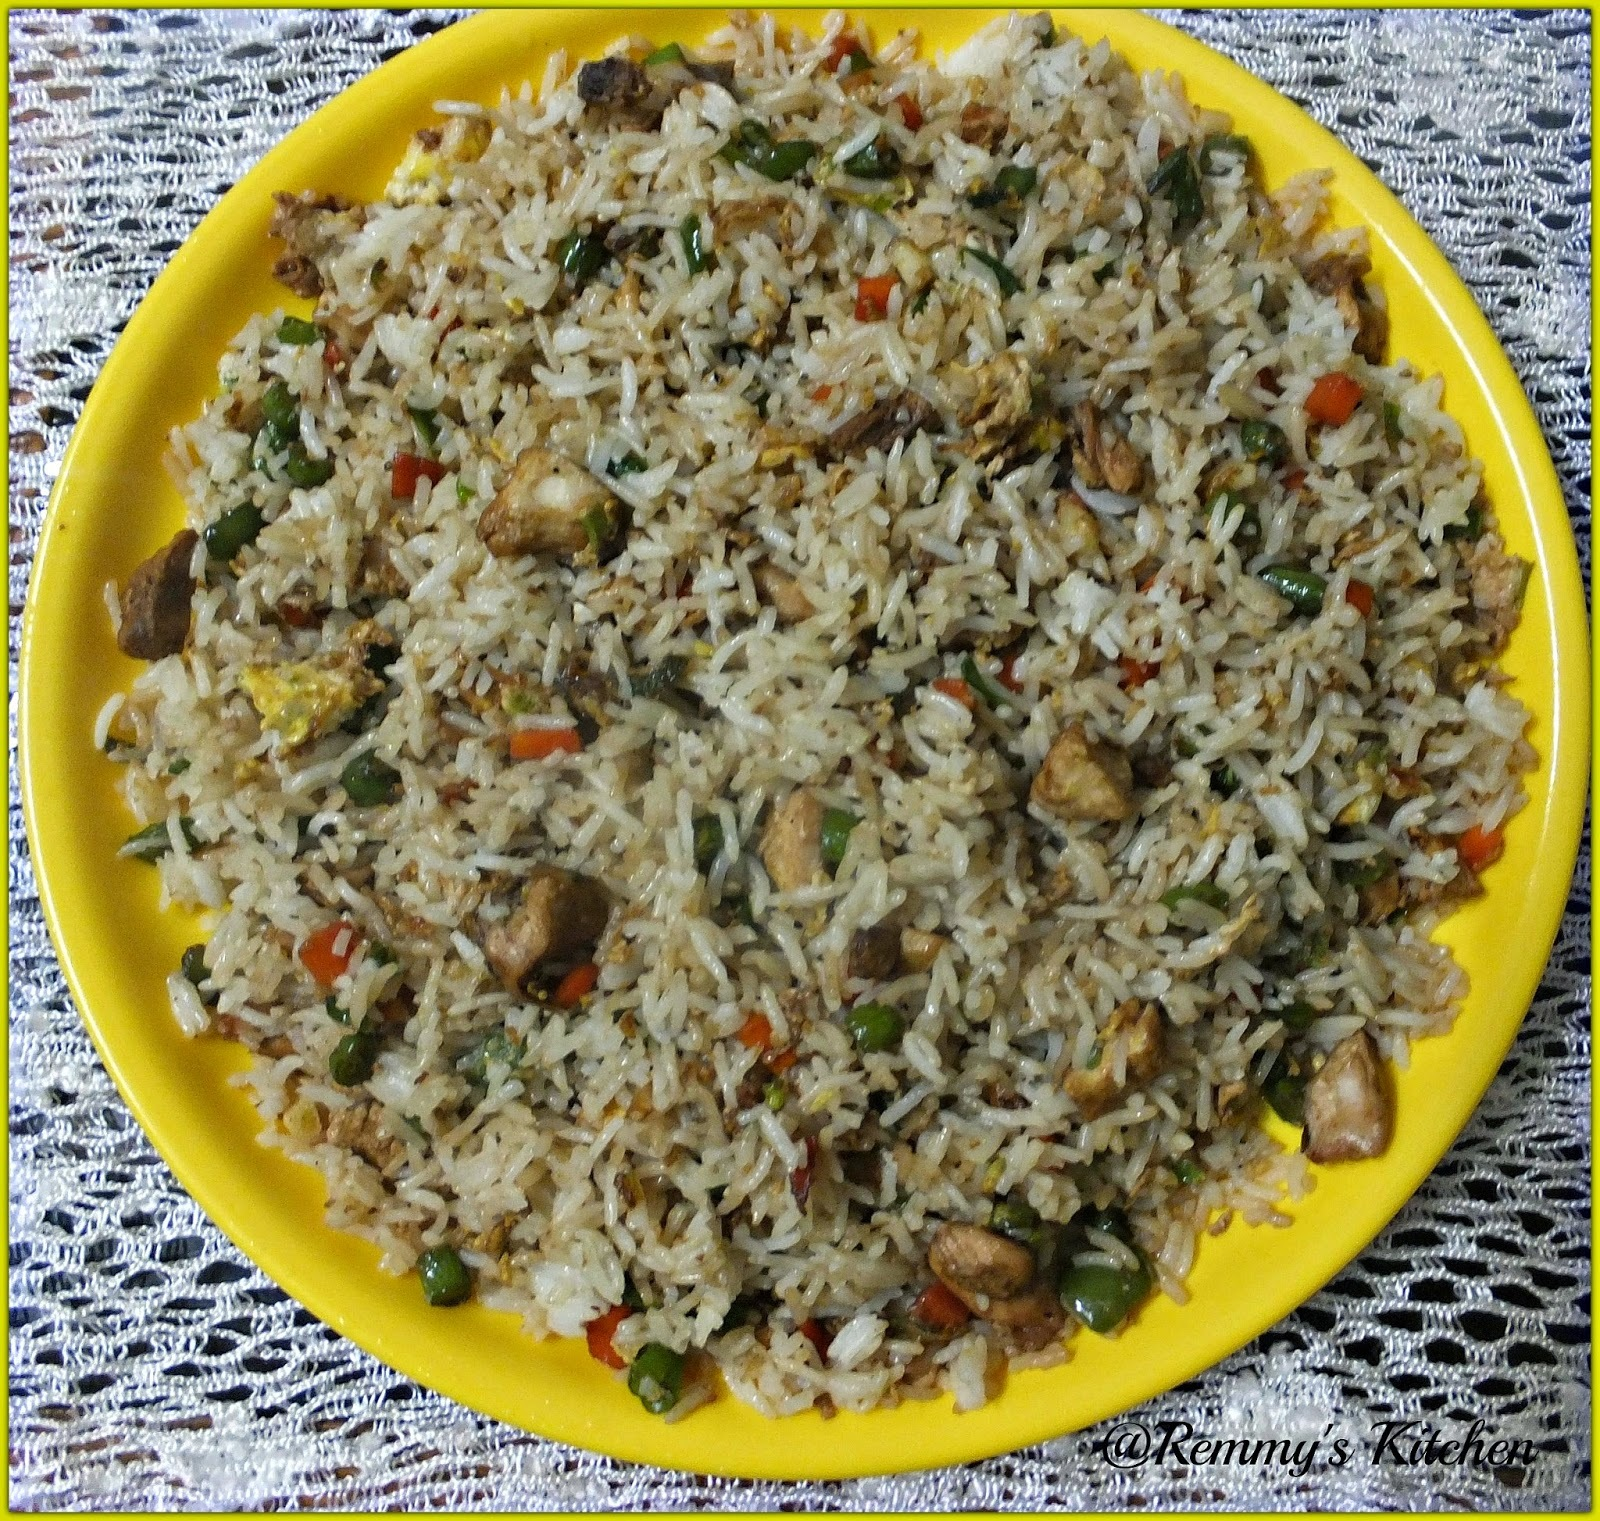 Chicken fried rice Fast food style